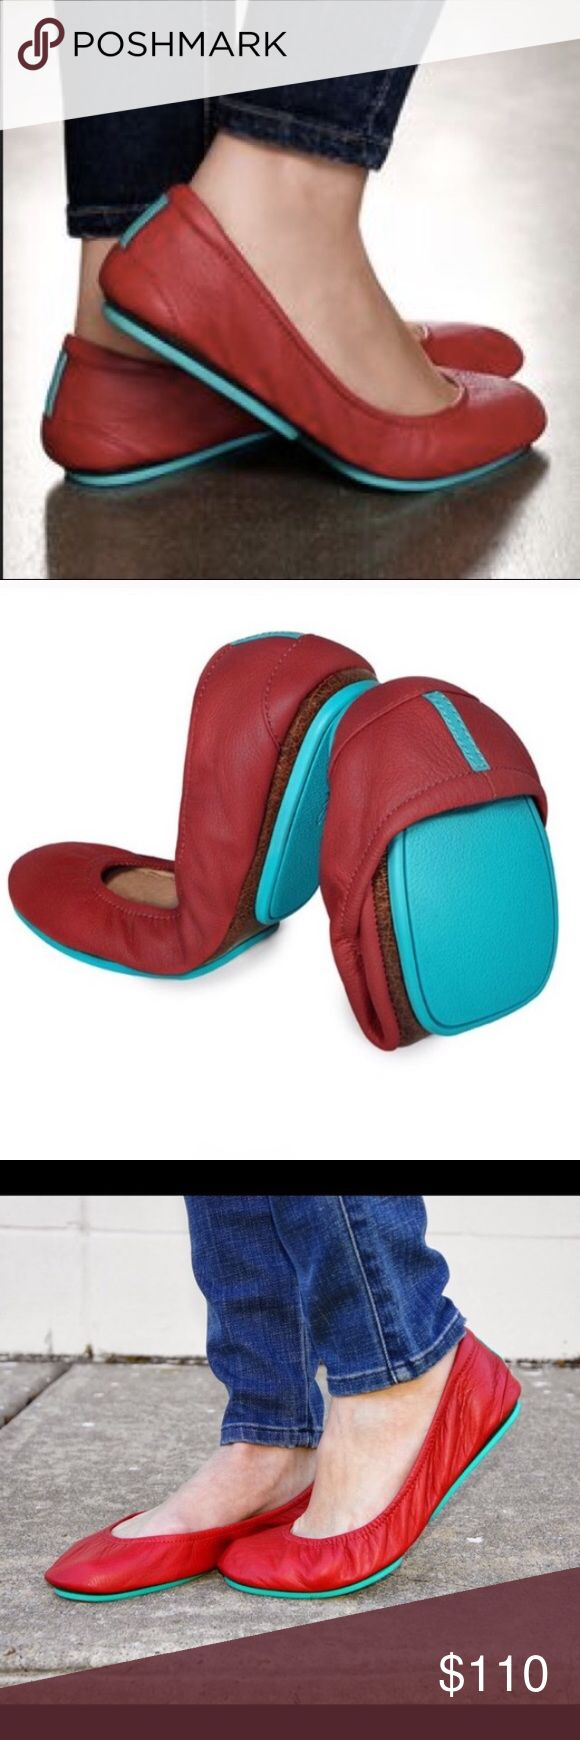 "Tieks Cardinal red cute comfy foldable flats sz 9 Authentic Tieks - ""Be bold in Cardinal Red Tieks! This stunning style acts as both a modern neutral and a striking pop of color. 100% premium, soft, full-grain leather Non-elasticized, cushioned back. Non-skid rubber soles and cushioned instep."" Good used condition. Slight scratches at tip of toebox but not noticeable unless at eye level. See pics for signs of wear. Listed as sz 9 but runs small, I recommend this as a good fit for regular…"